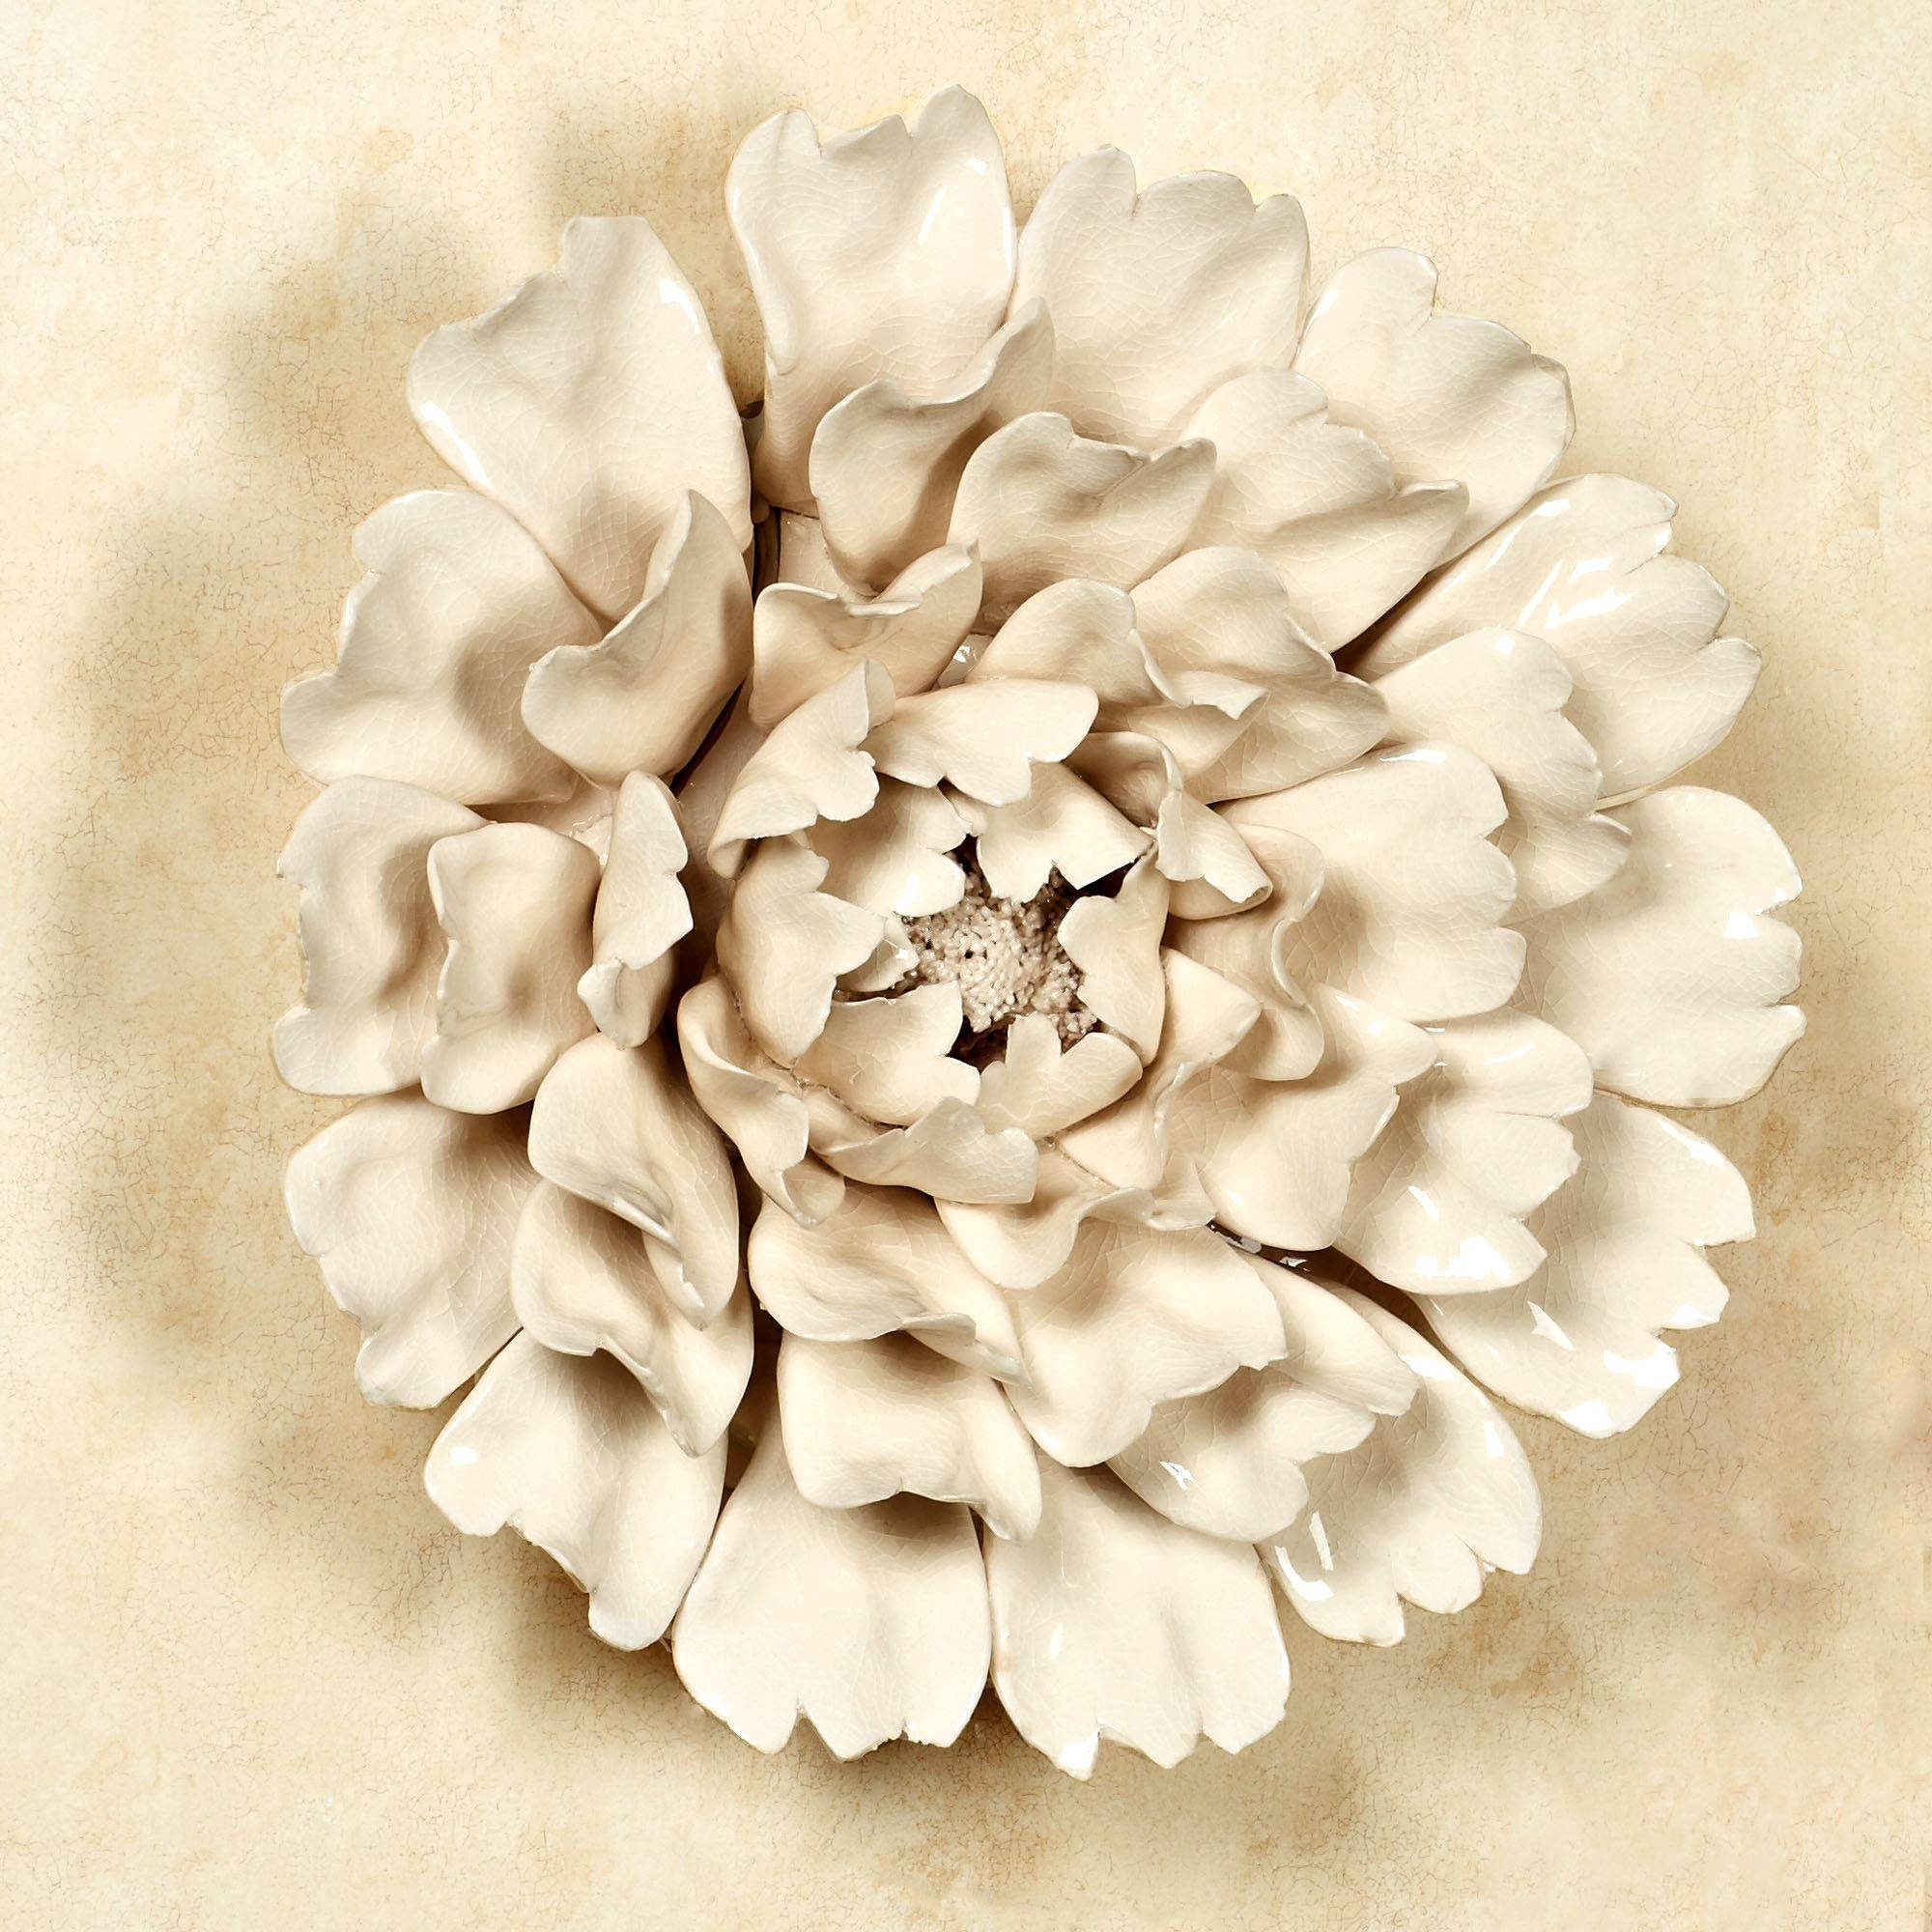 Isabella Ceramic Flower Blossom Wall Art Intended For Latest Ceramic Flower Wall Art (View 15 of 30)